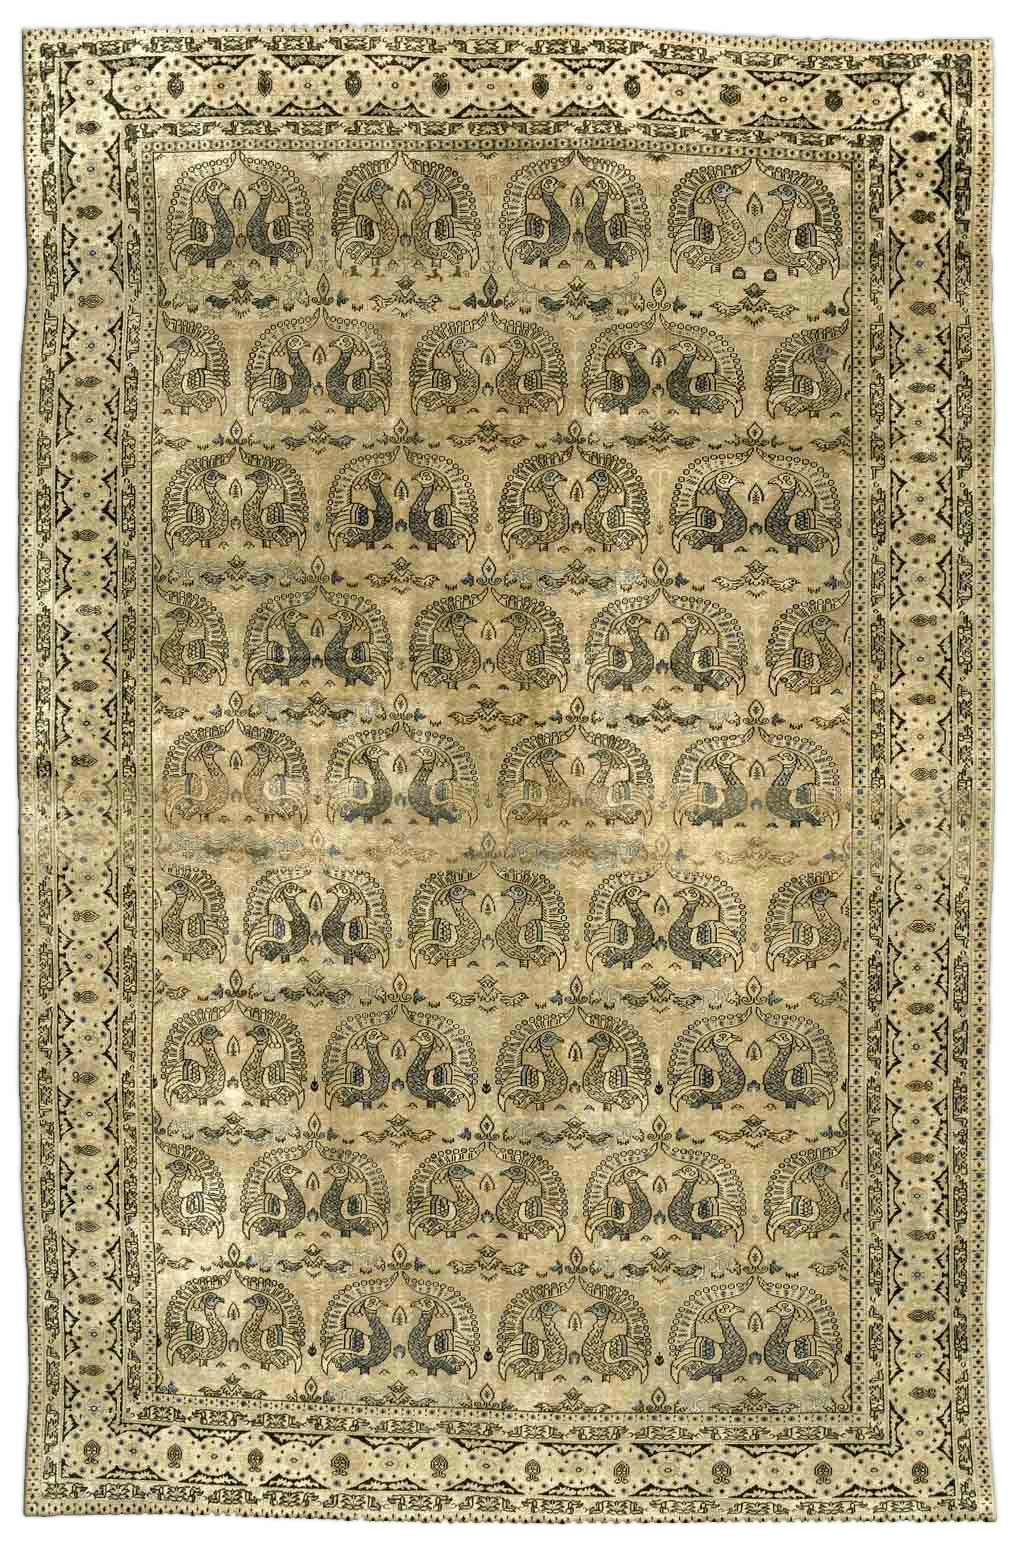 Antique Persian Tabriz Carpet BB3294